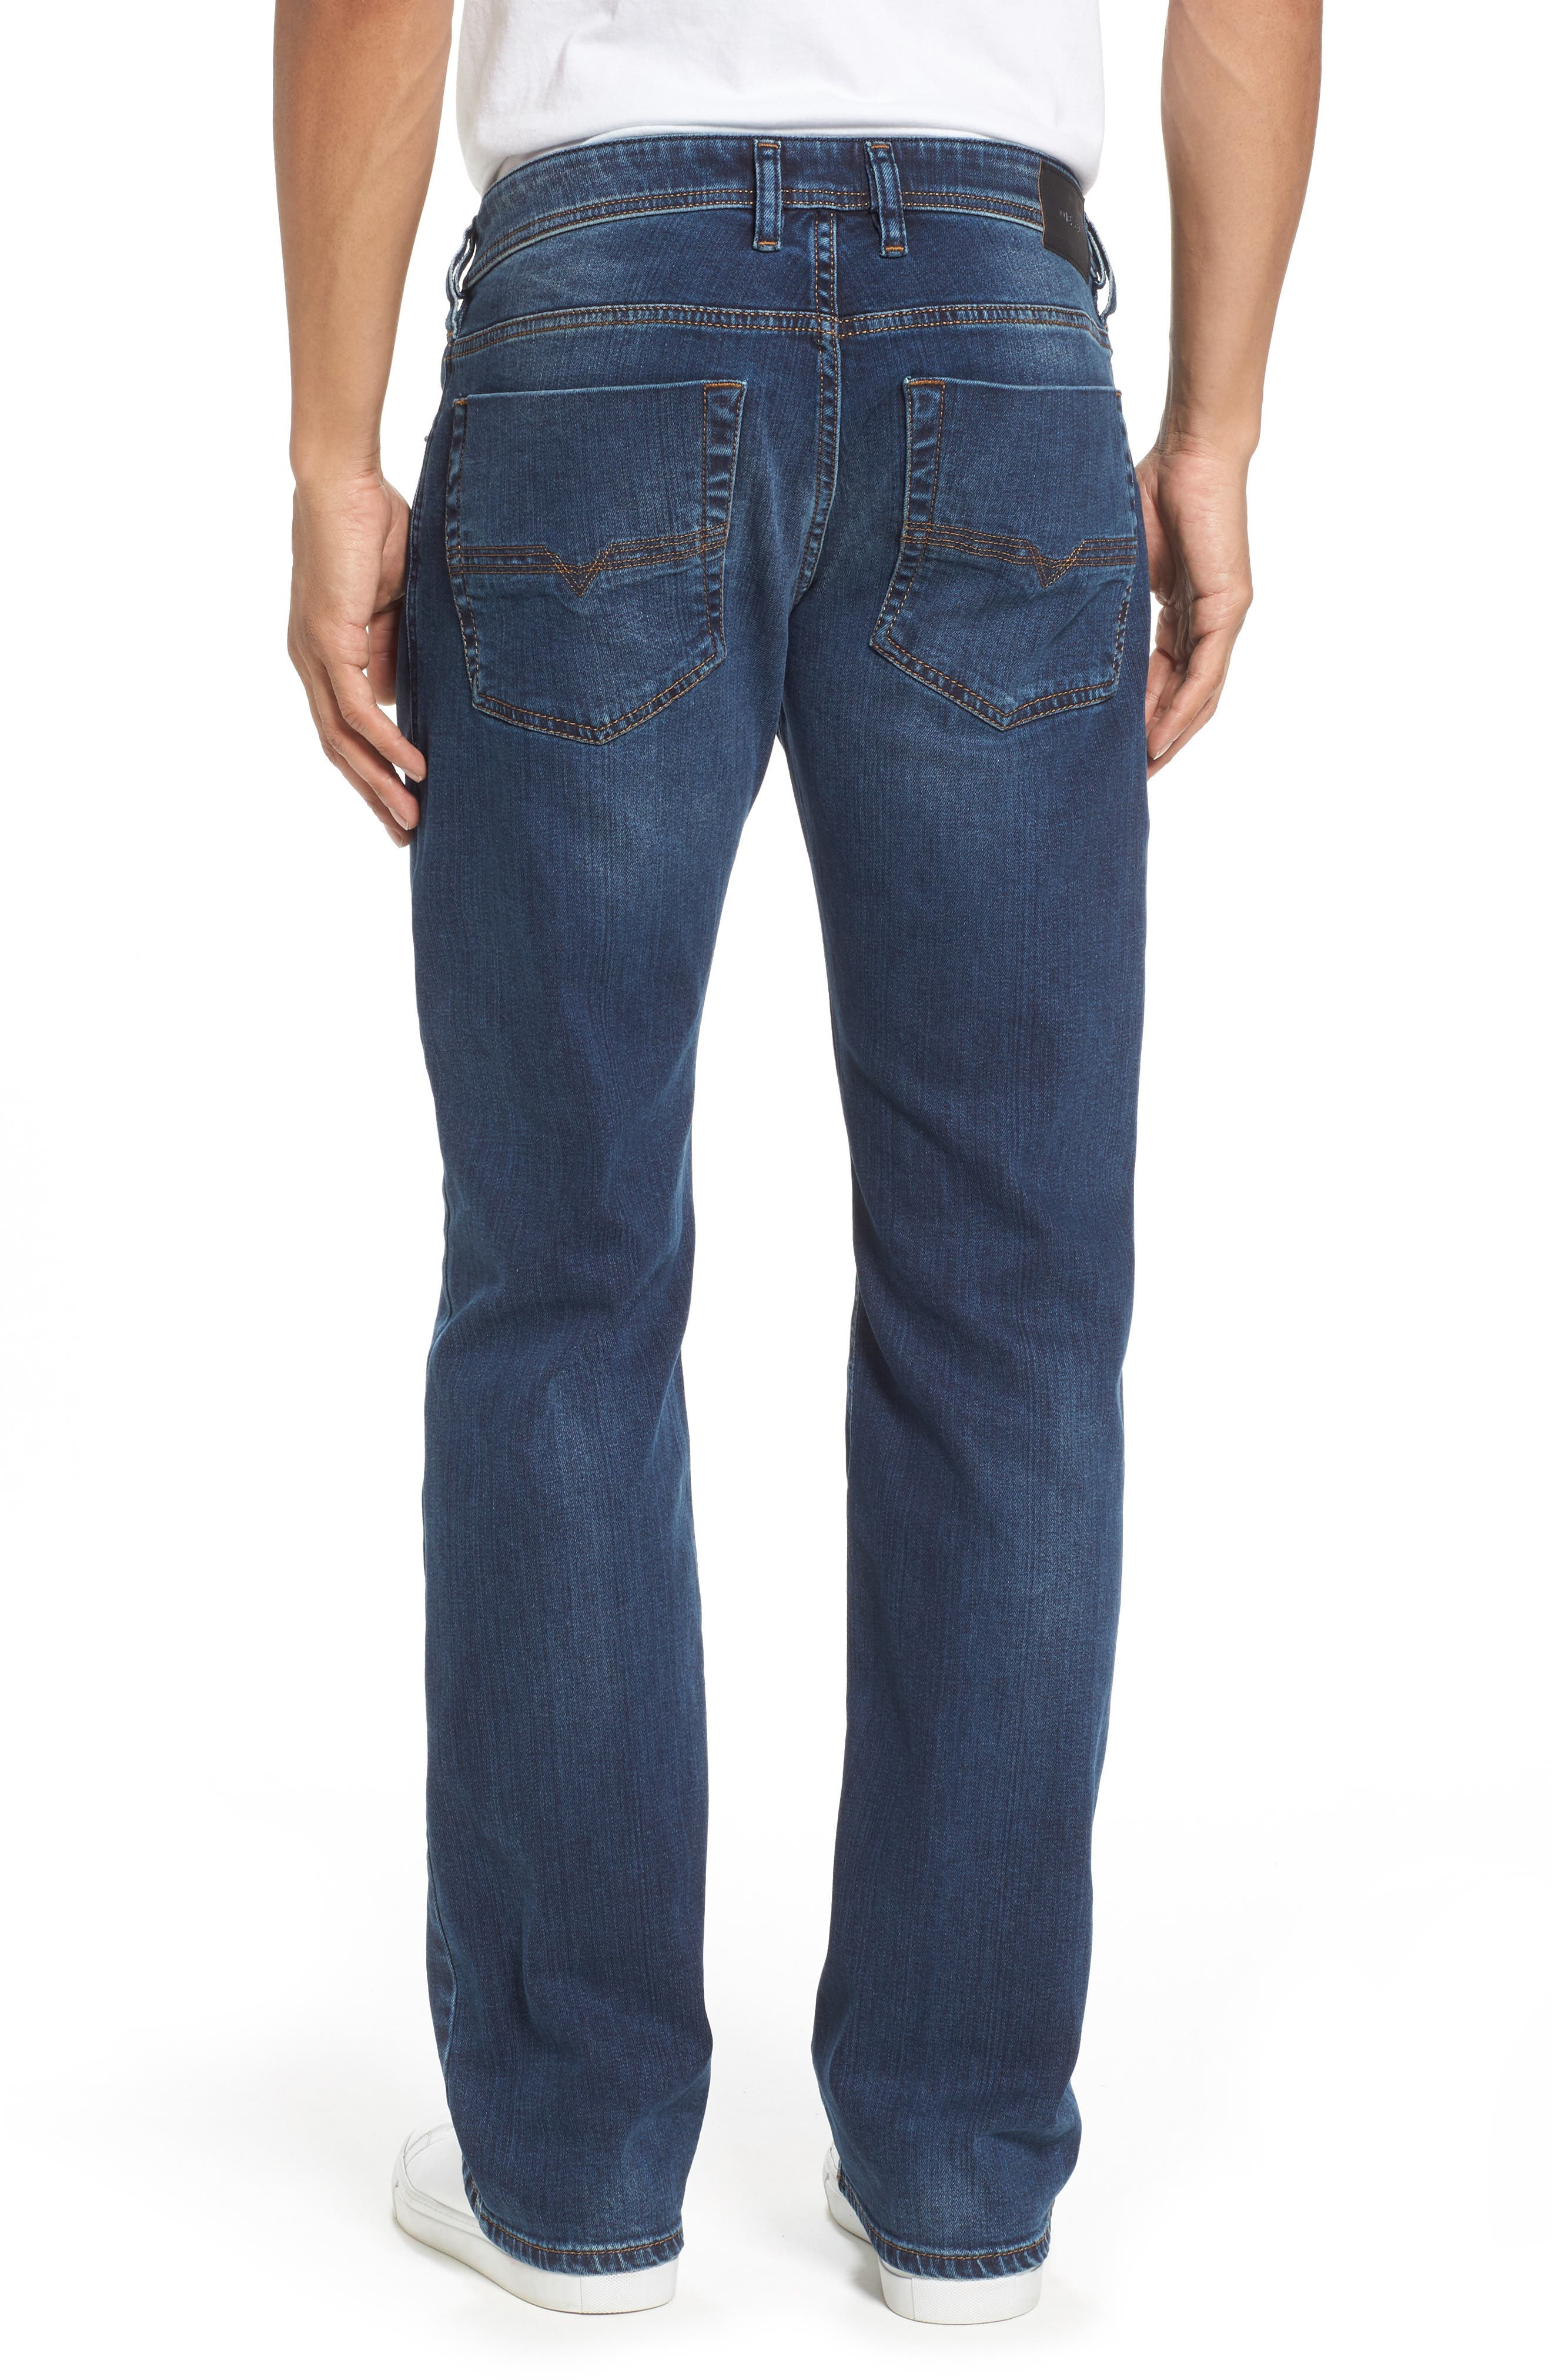 DIESEL<SUP>®</SUP>, Zatiny Bootcut Jeans, Alternate thumbnail 2, color, 084BU